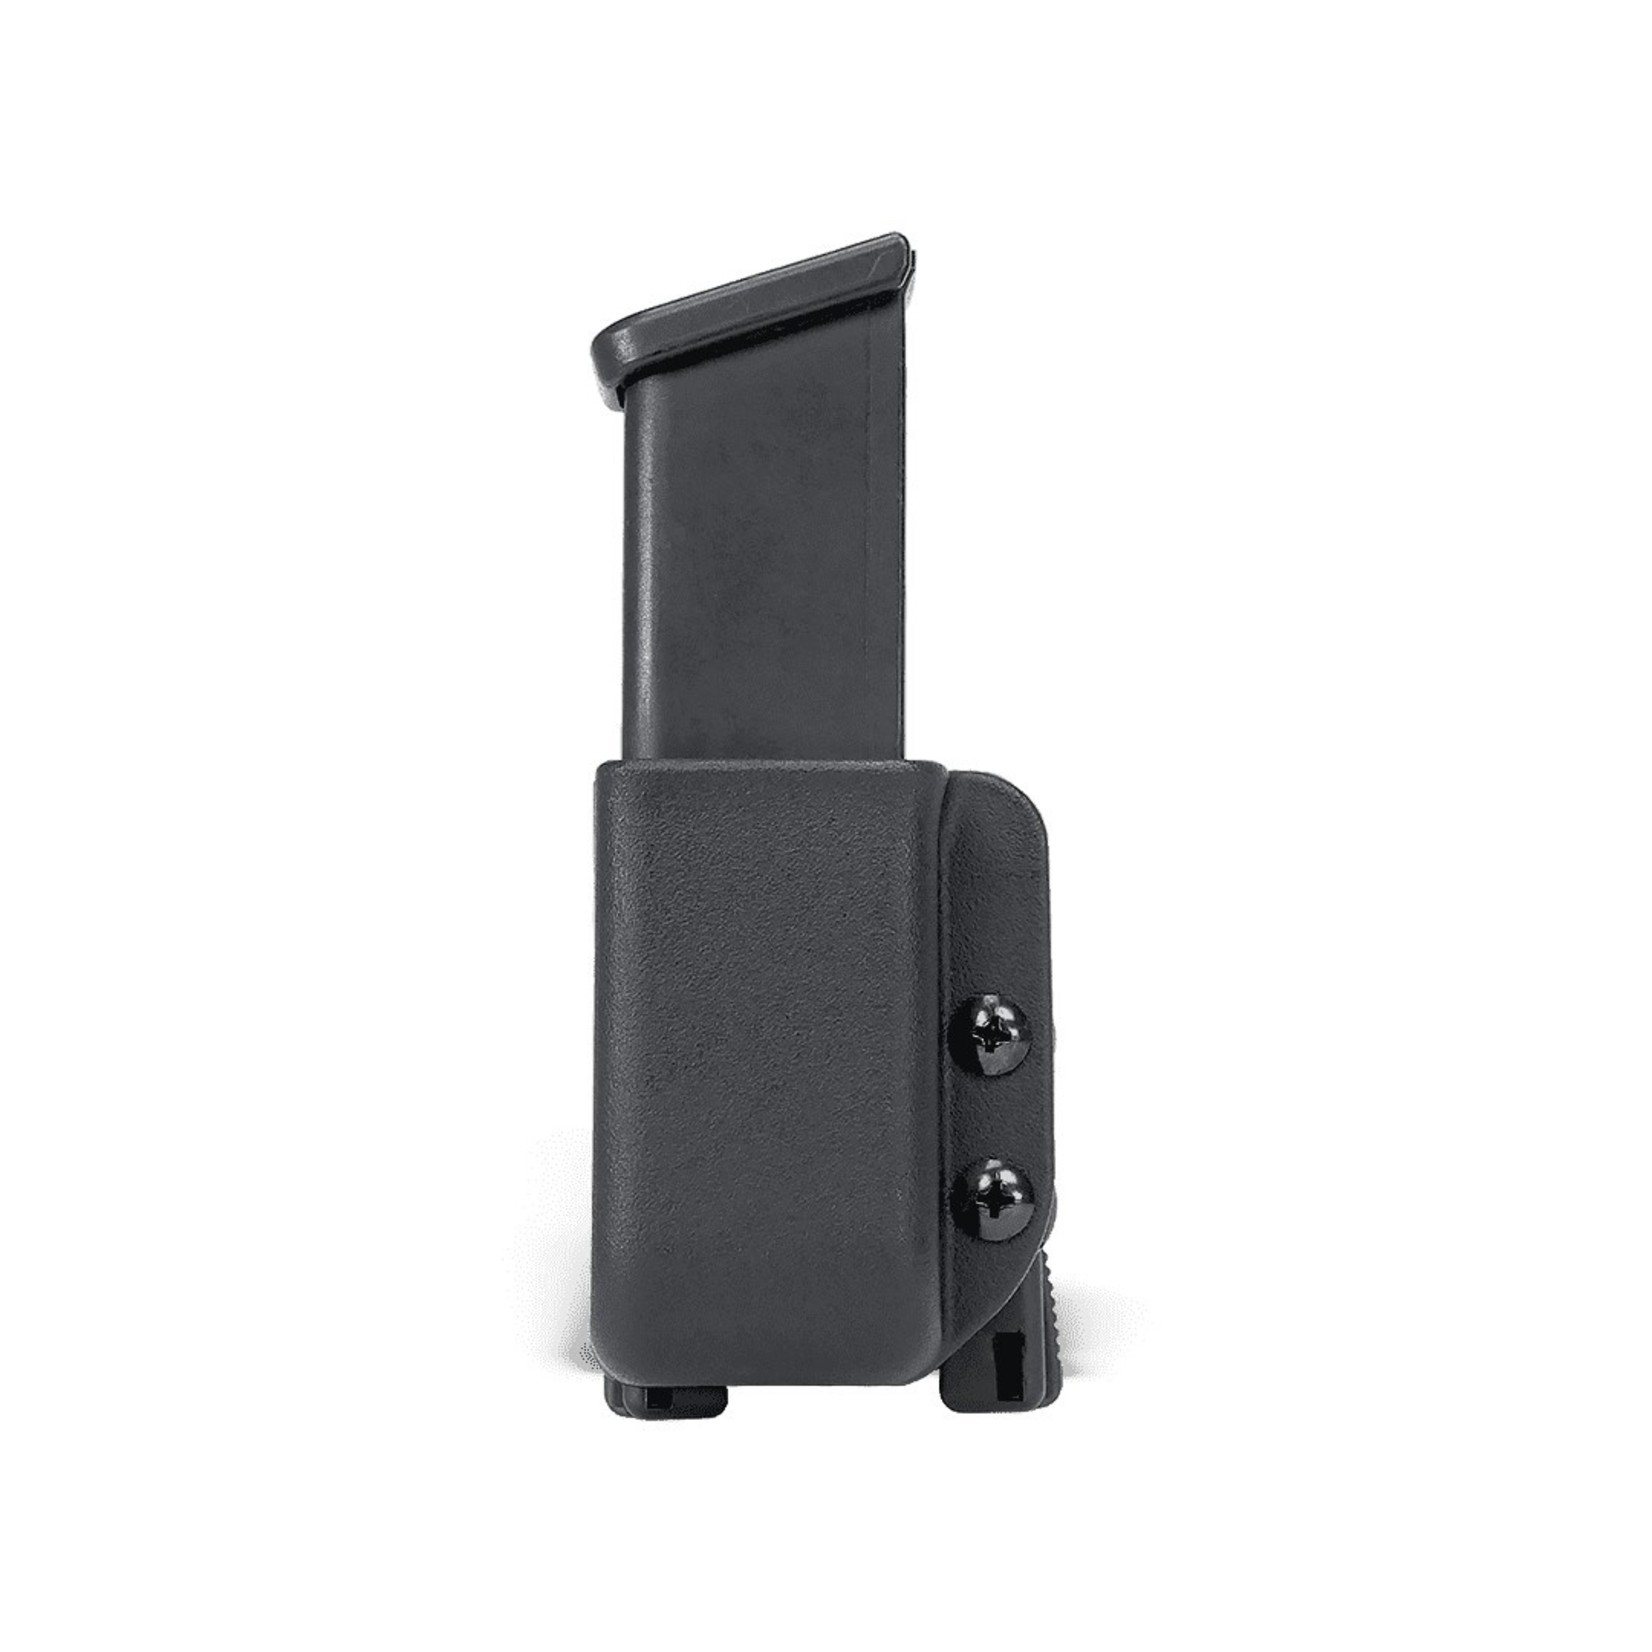 BLADE-TECH SIGNATURE SINGLE MAG POUCH